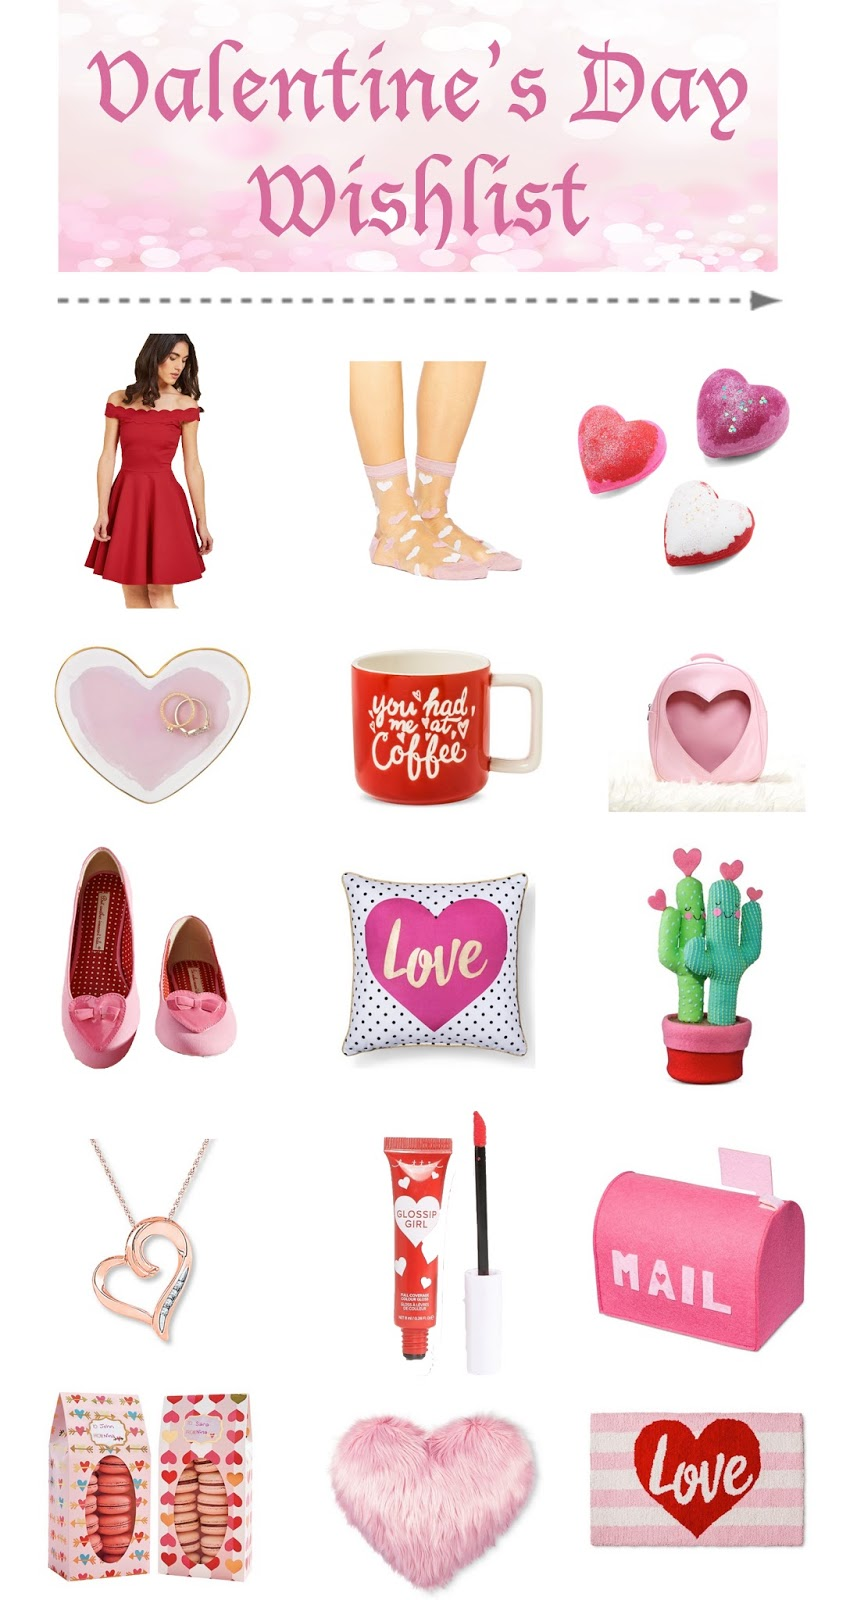 Treat a loved one or yourself to these cute Valentine's Day goodies!